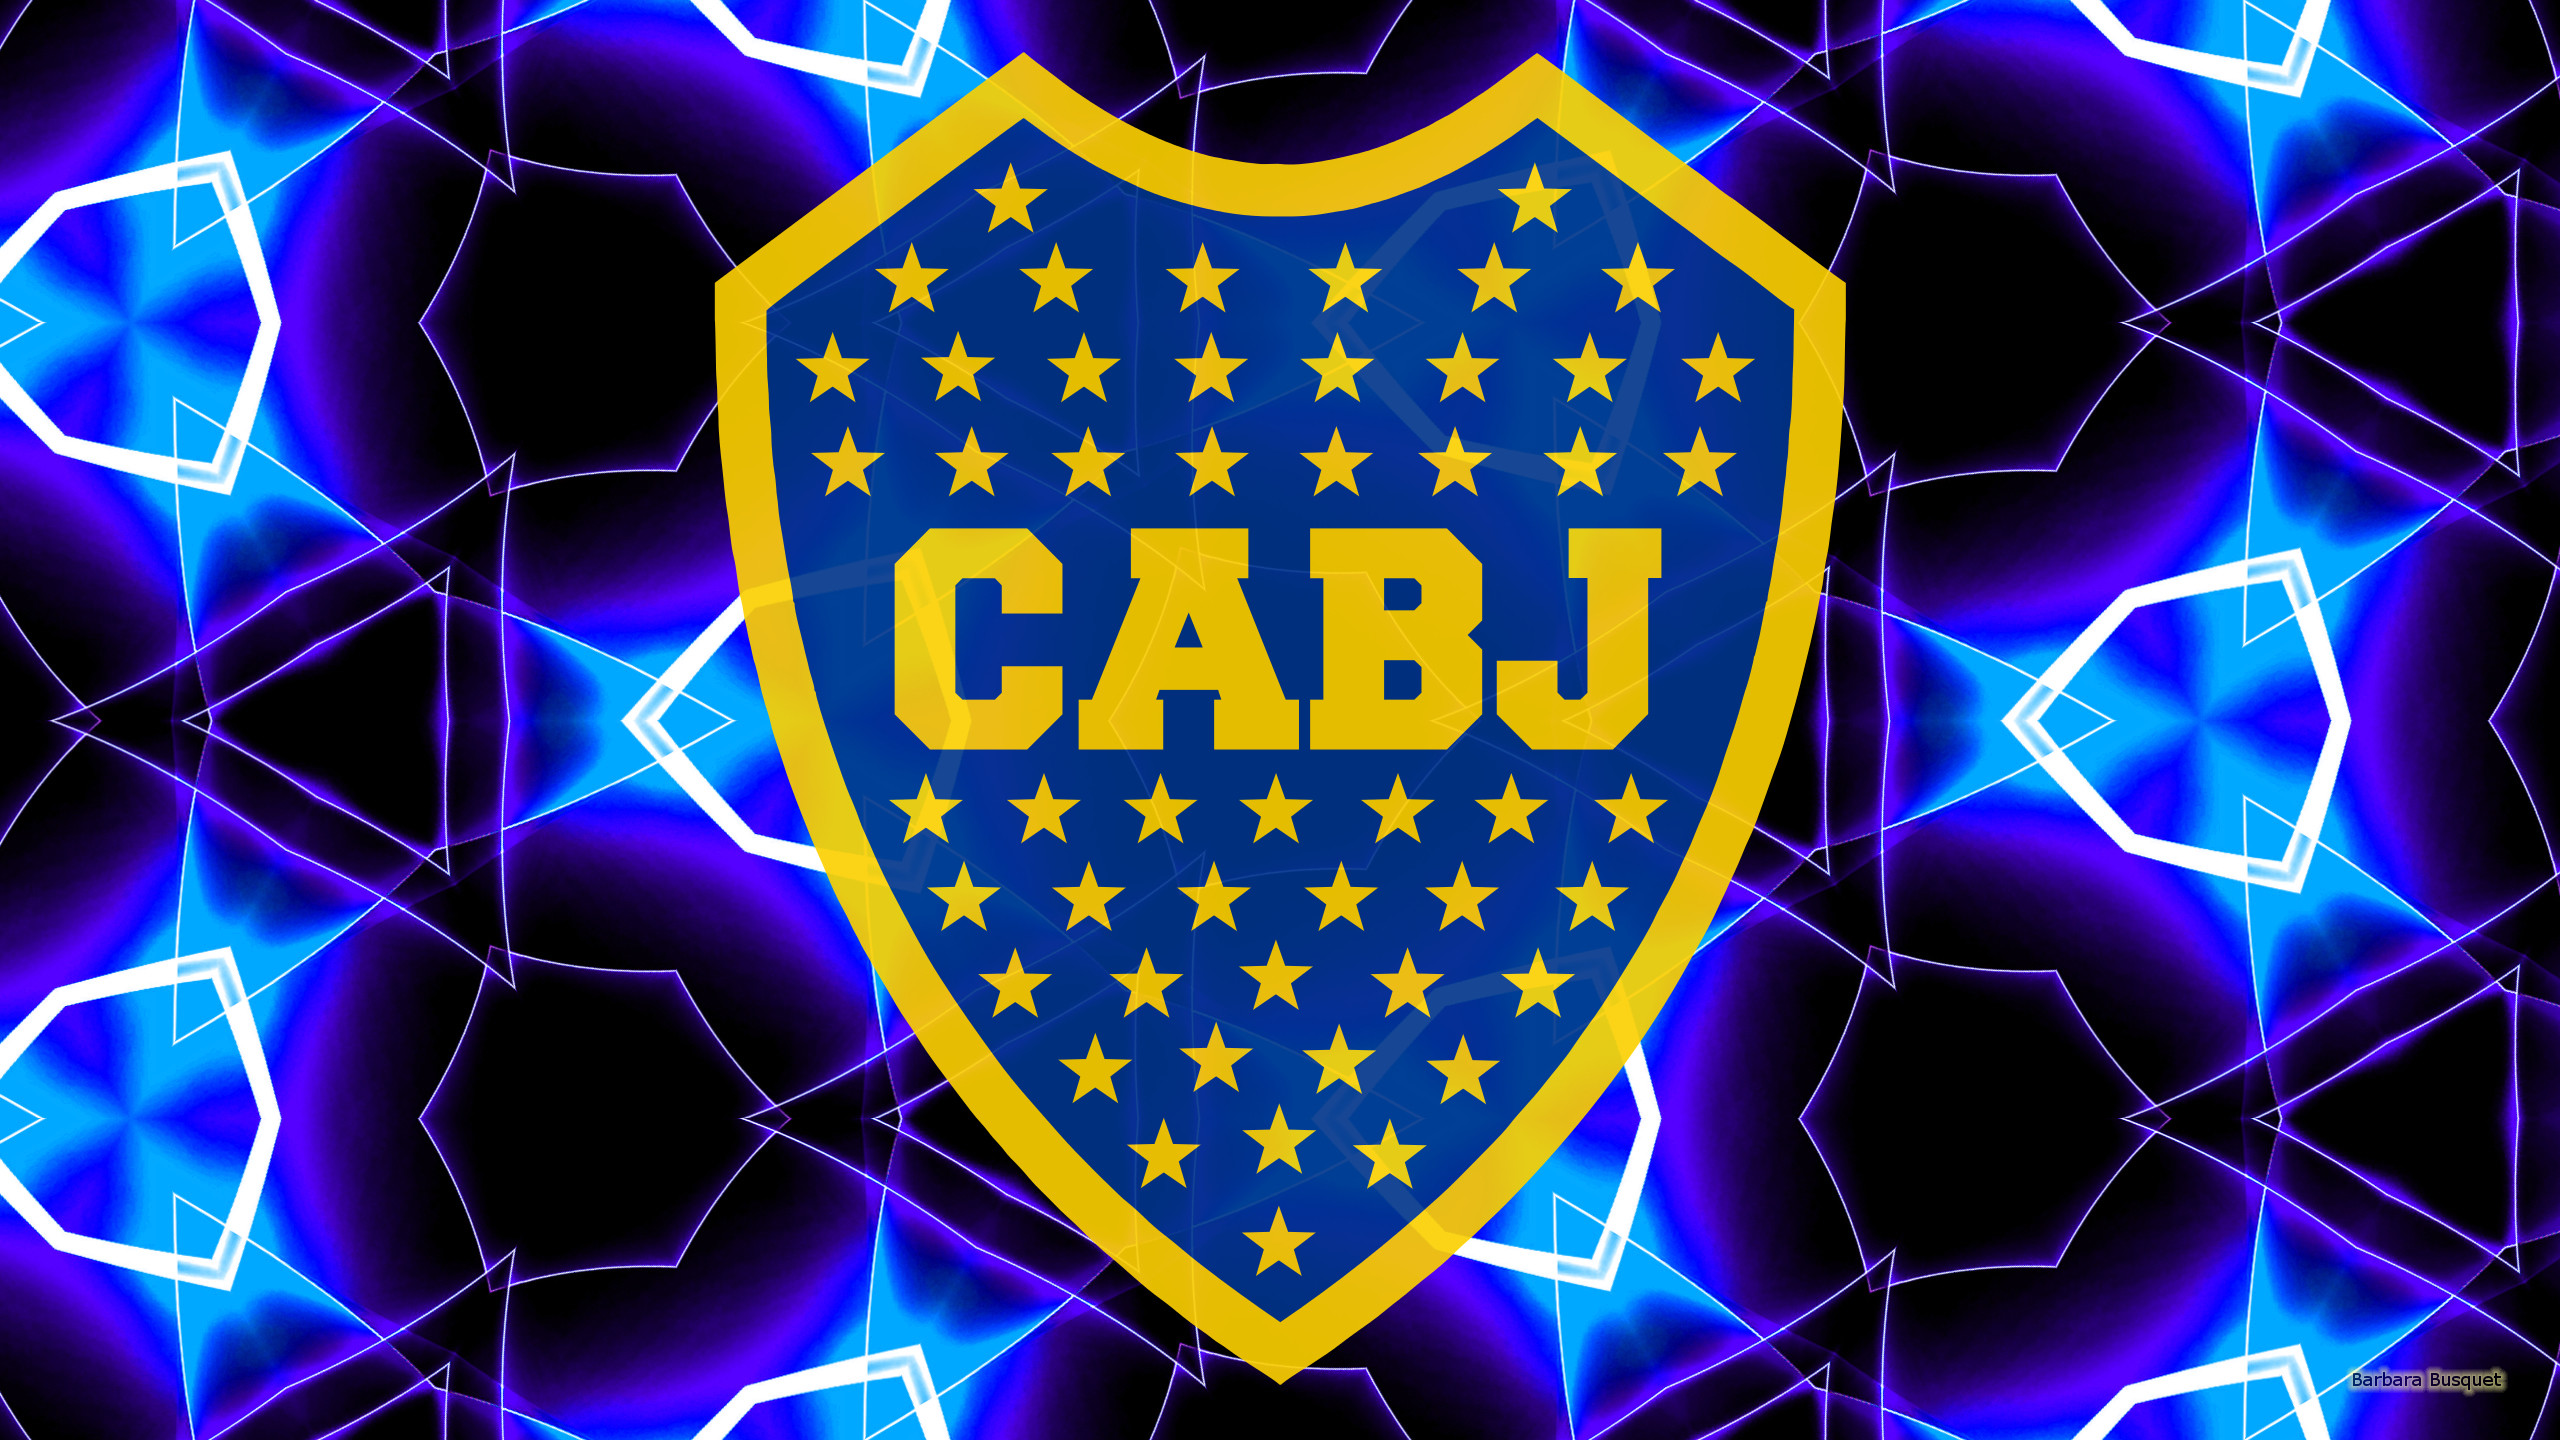 CA Boca Juniors Football Club